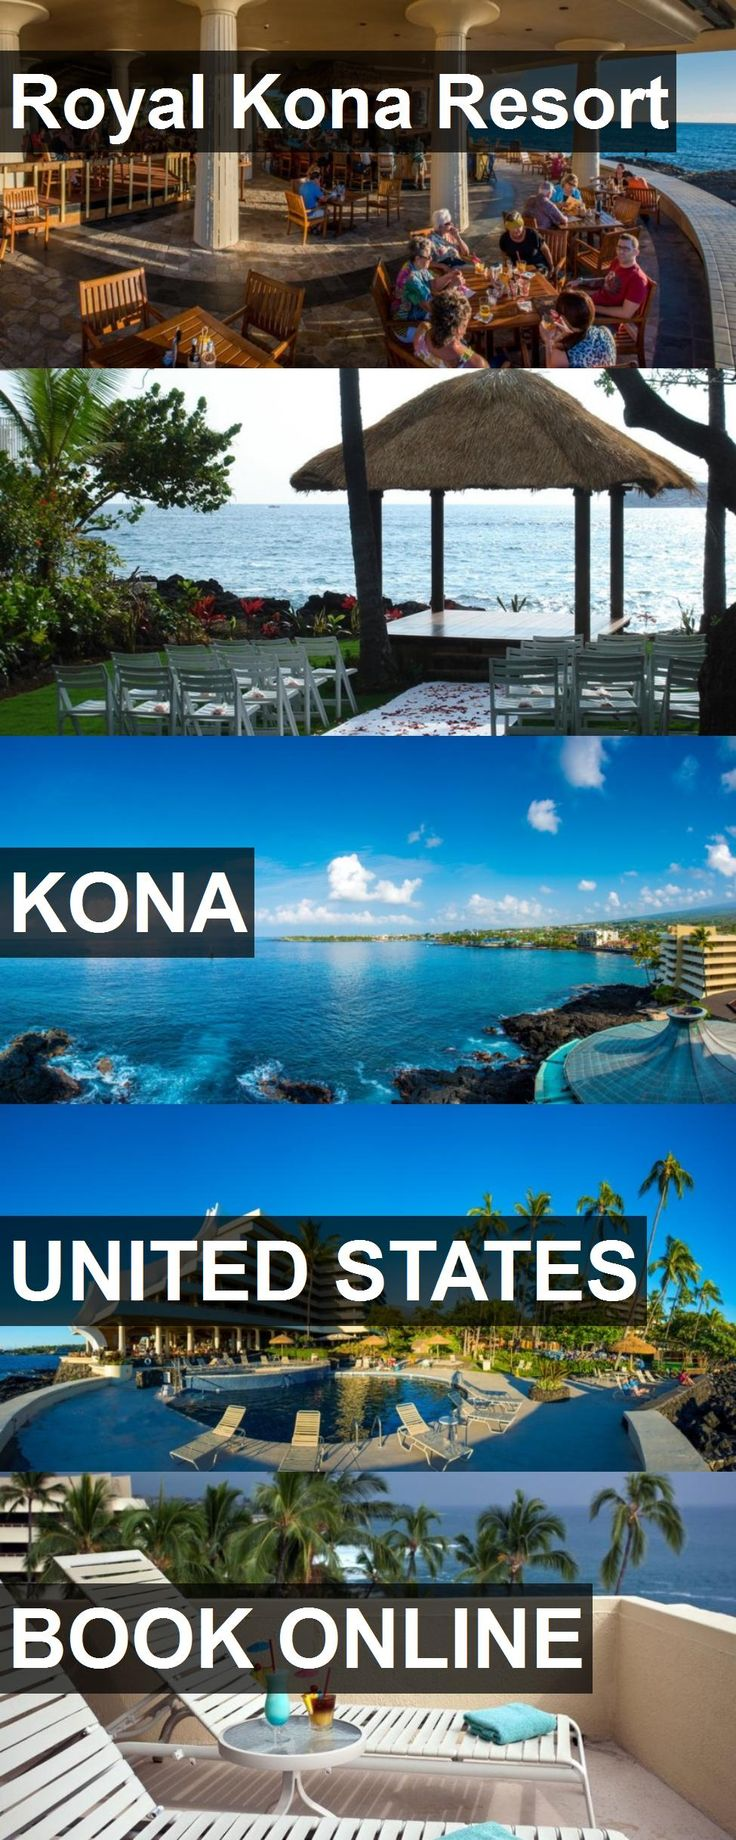 Hotel Royal Kona Resort in Kona, United States. For more information, photos, reviews and best prices please follow the link. #UnitedStates #Kona #RoyalKonaResort #hotel #travel #vacation